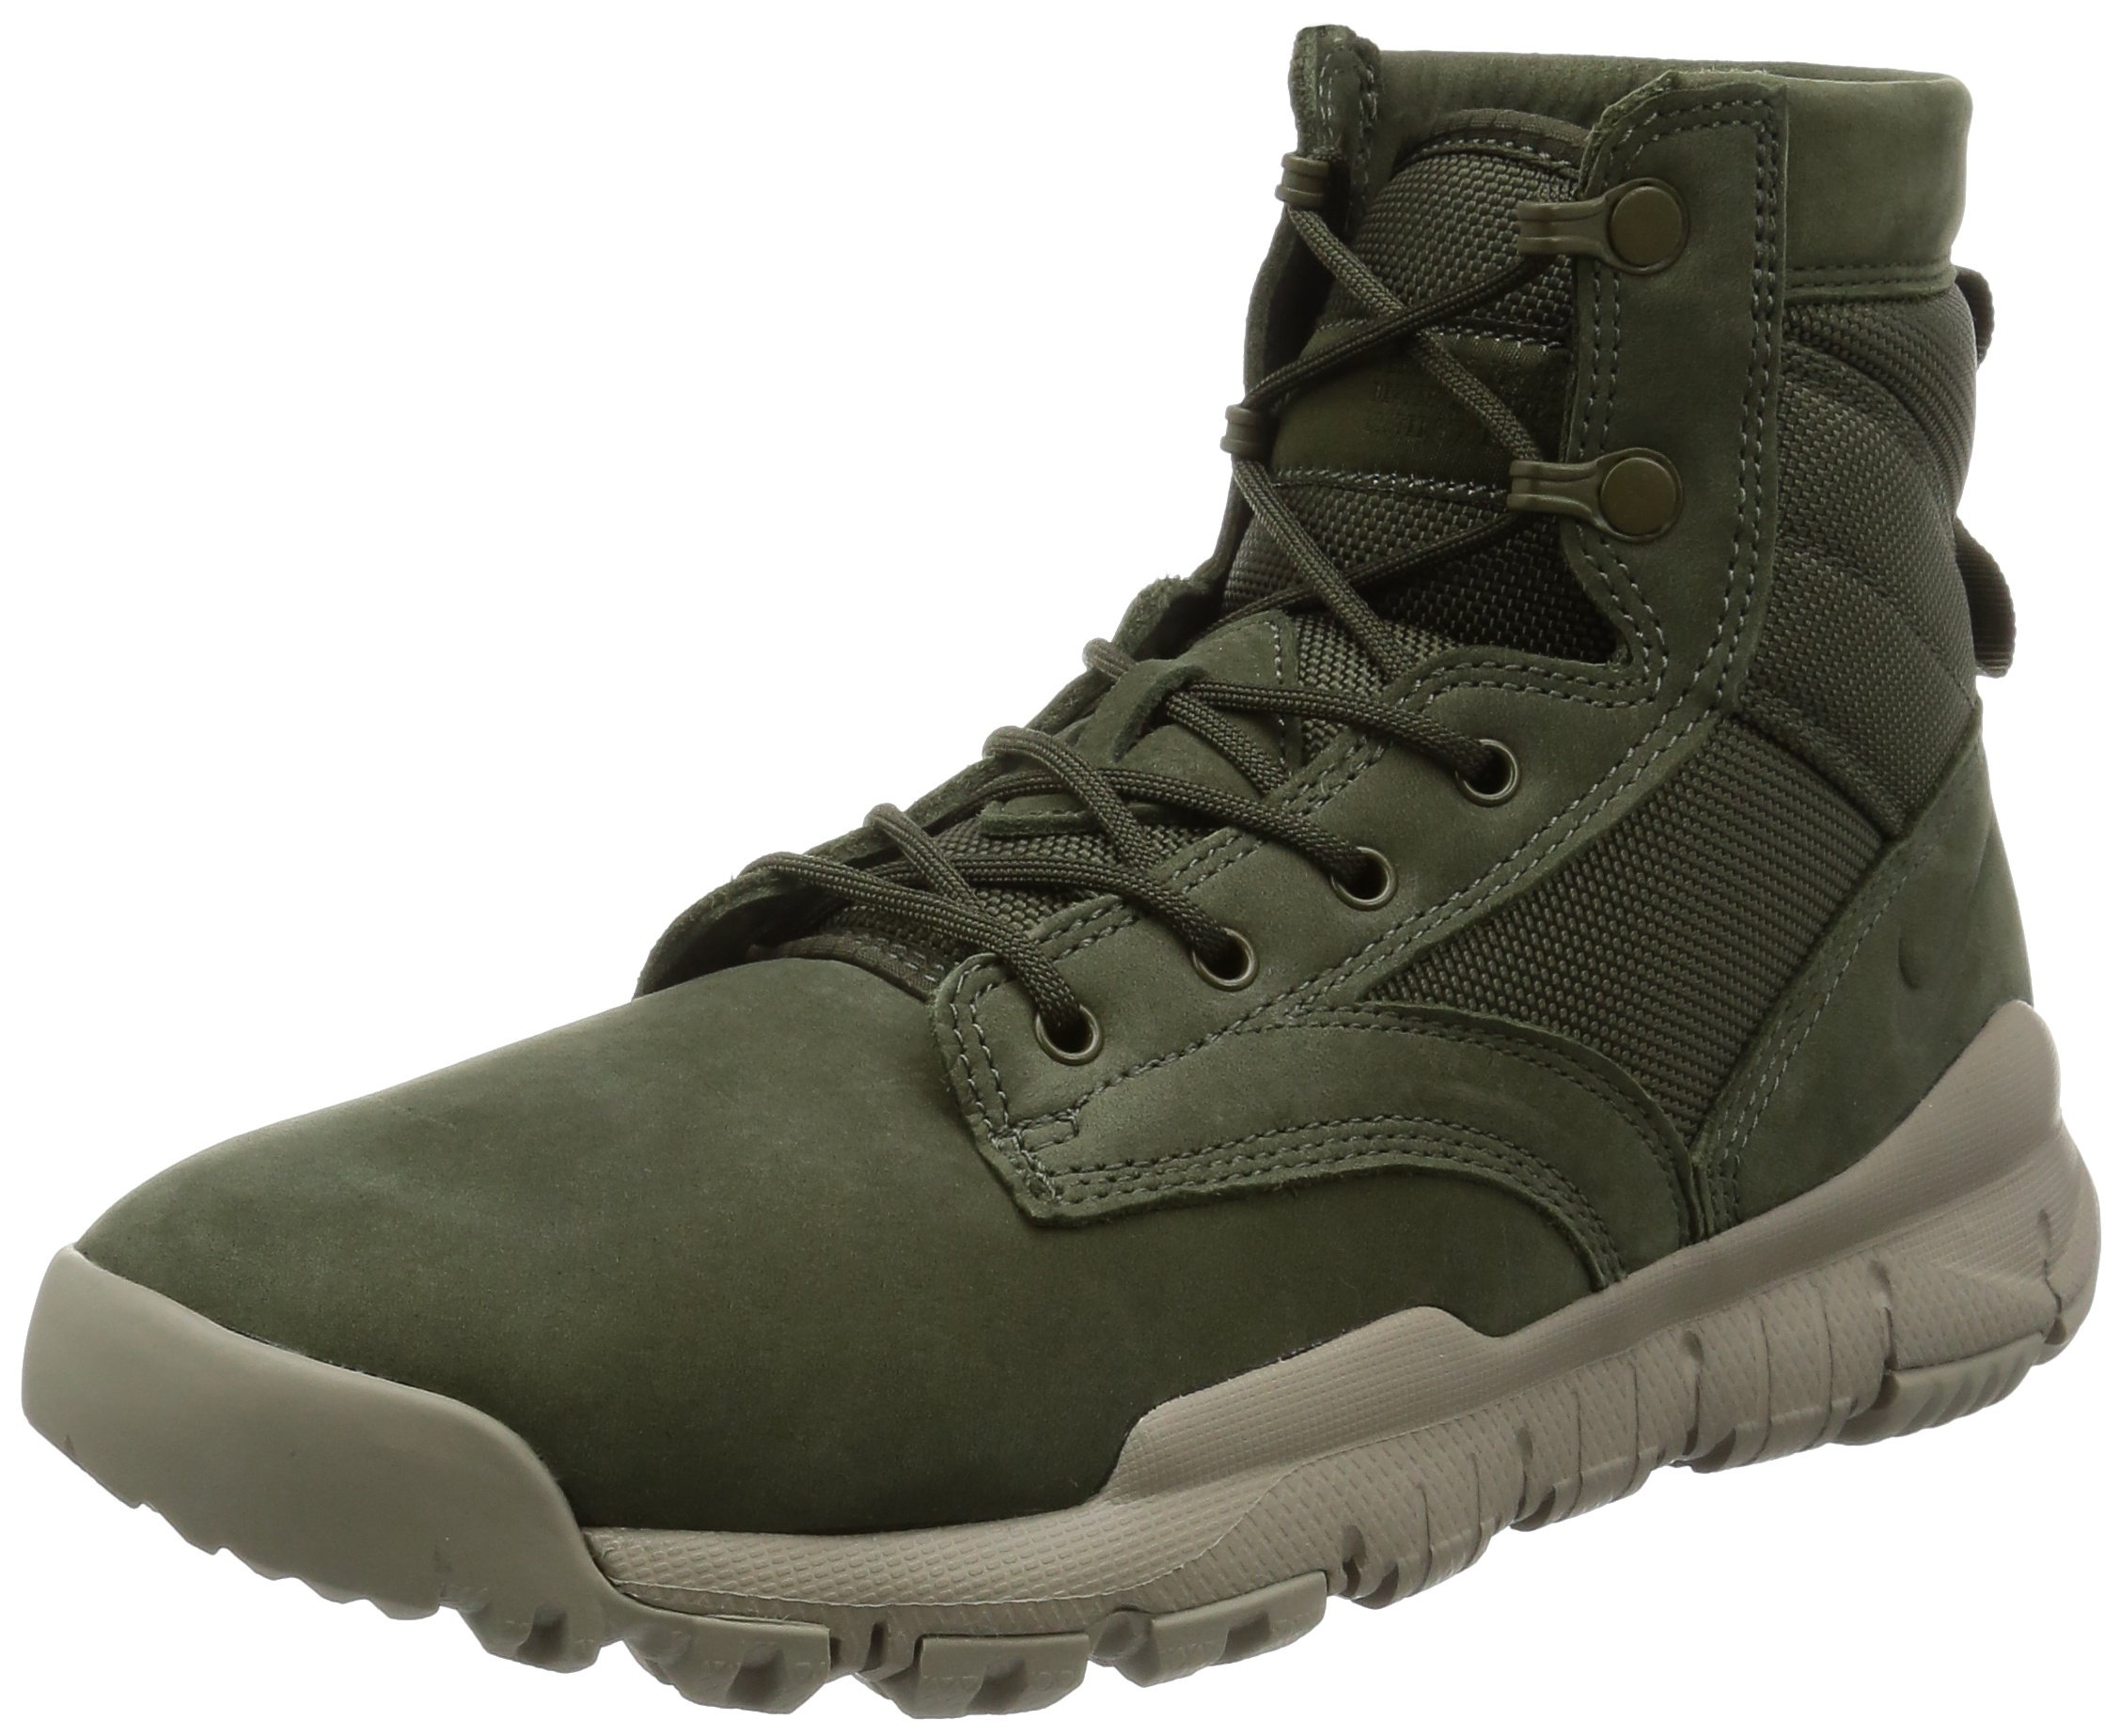 7c9345e0938 Galleon - Nike SFB Special Field Boots Leather NWS Outdoor Boot, 8 D(M)